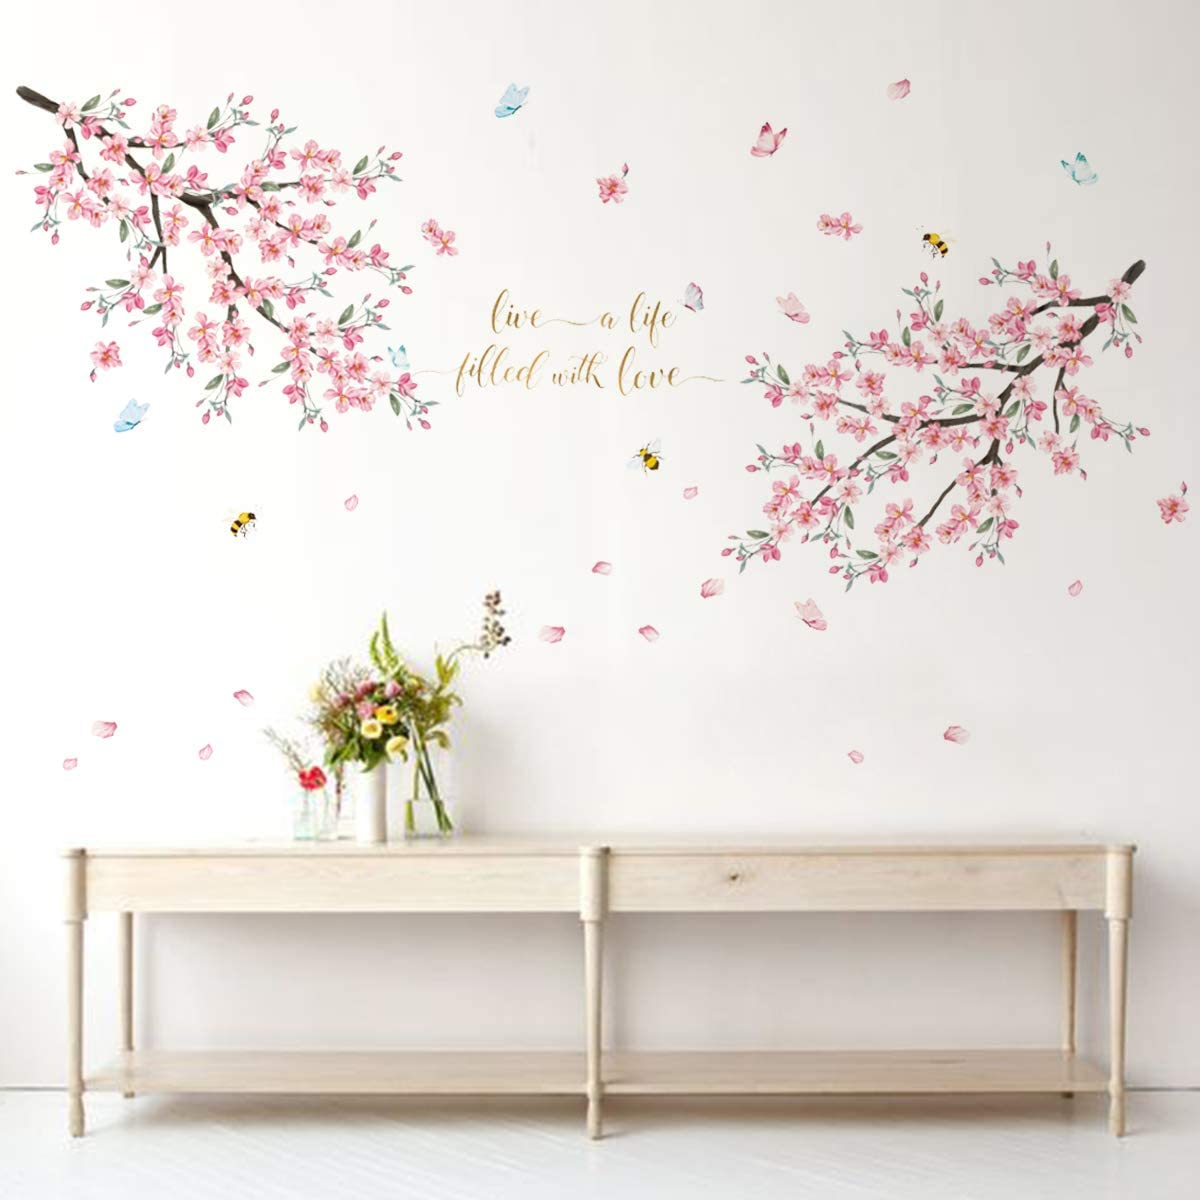 Runtoo Cherry Blossom Wall Decal Flower Tree Branch Wall Art Stickers Living Room Bedroom Wall Décor